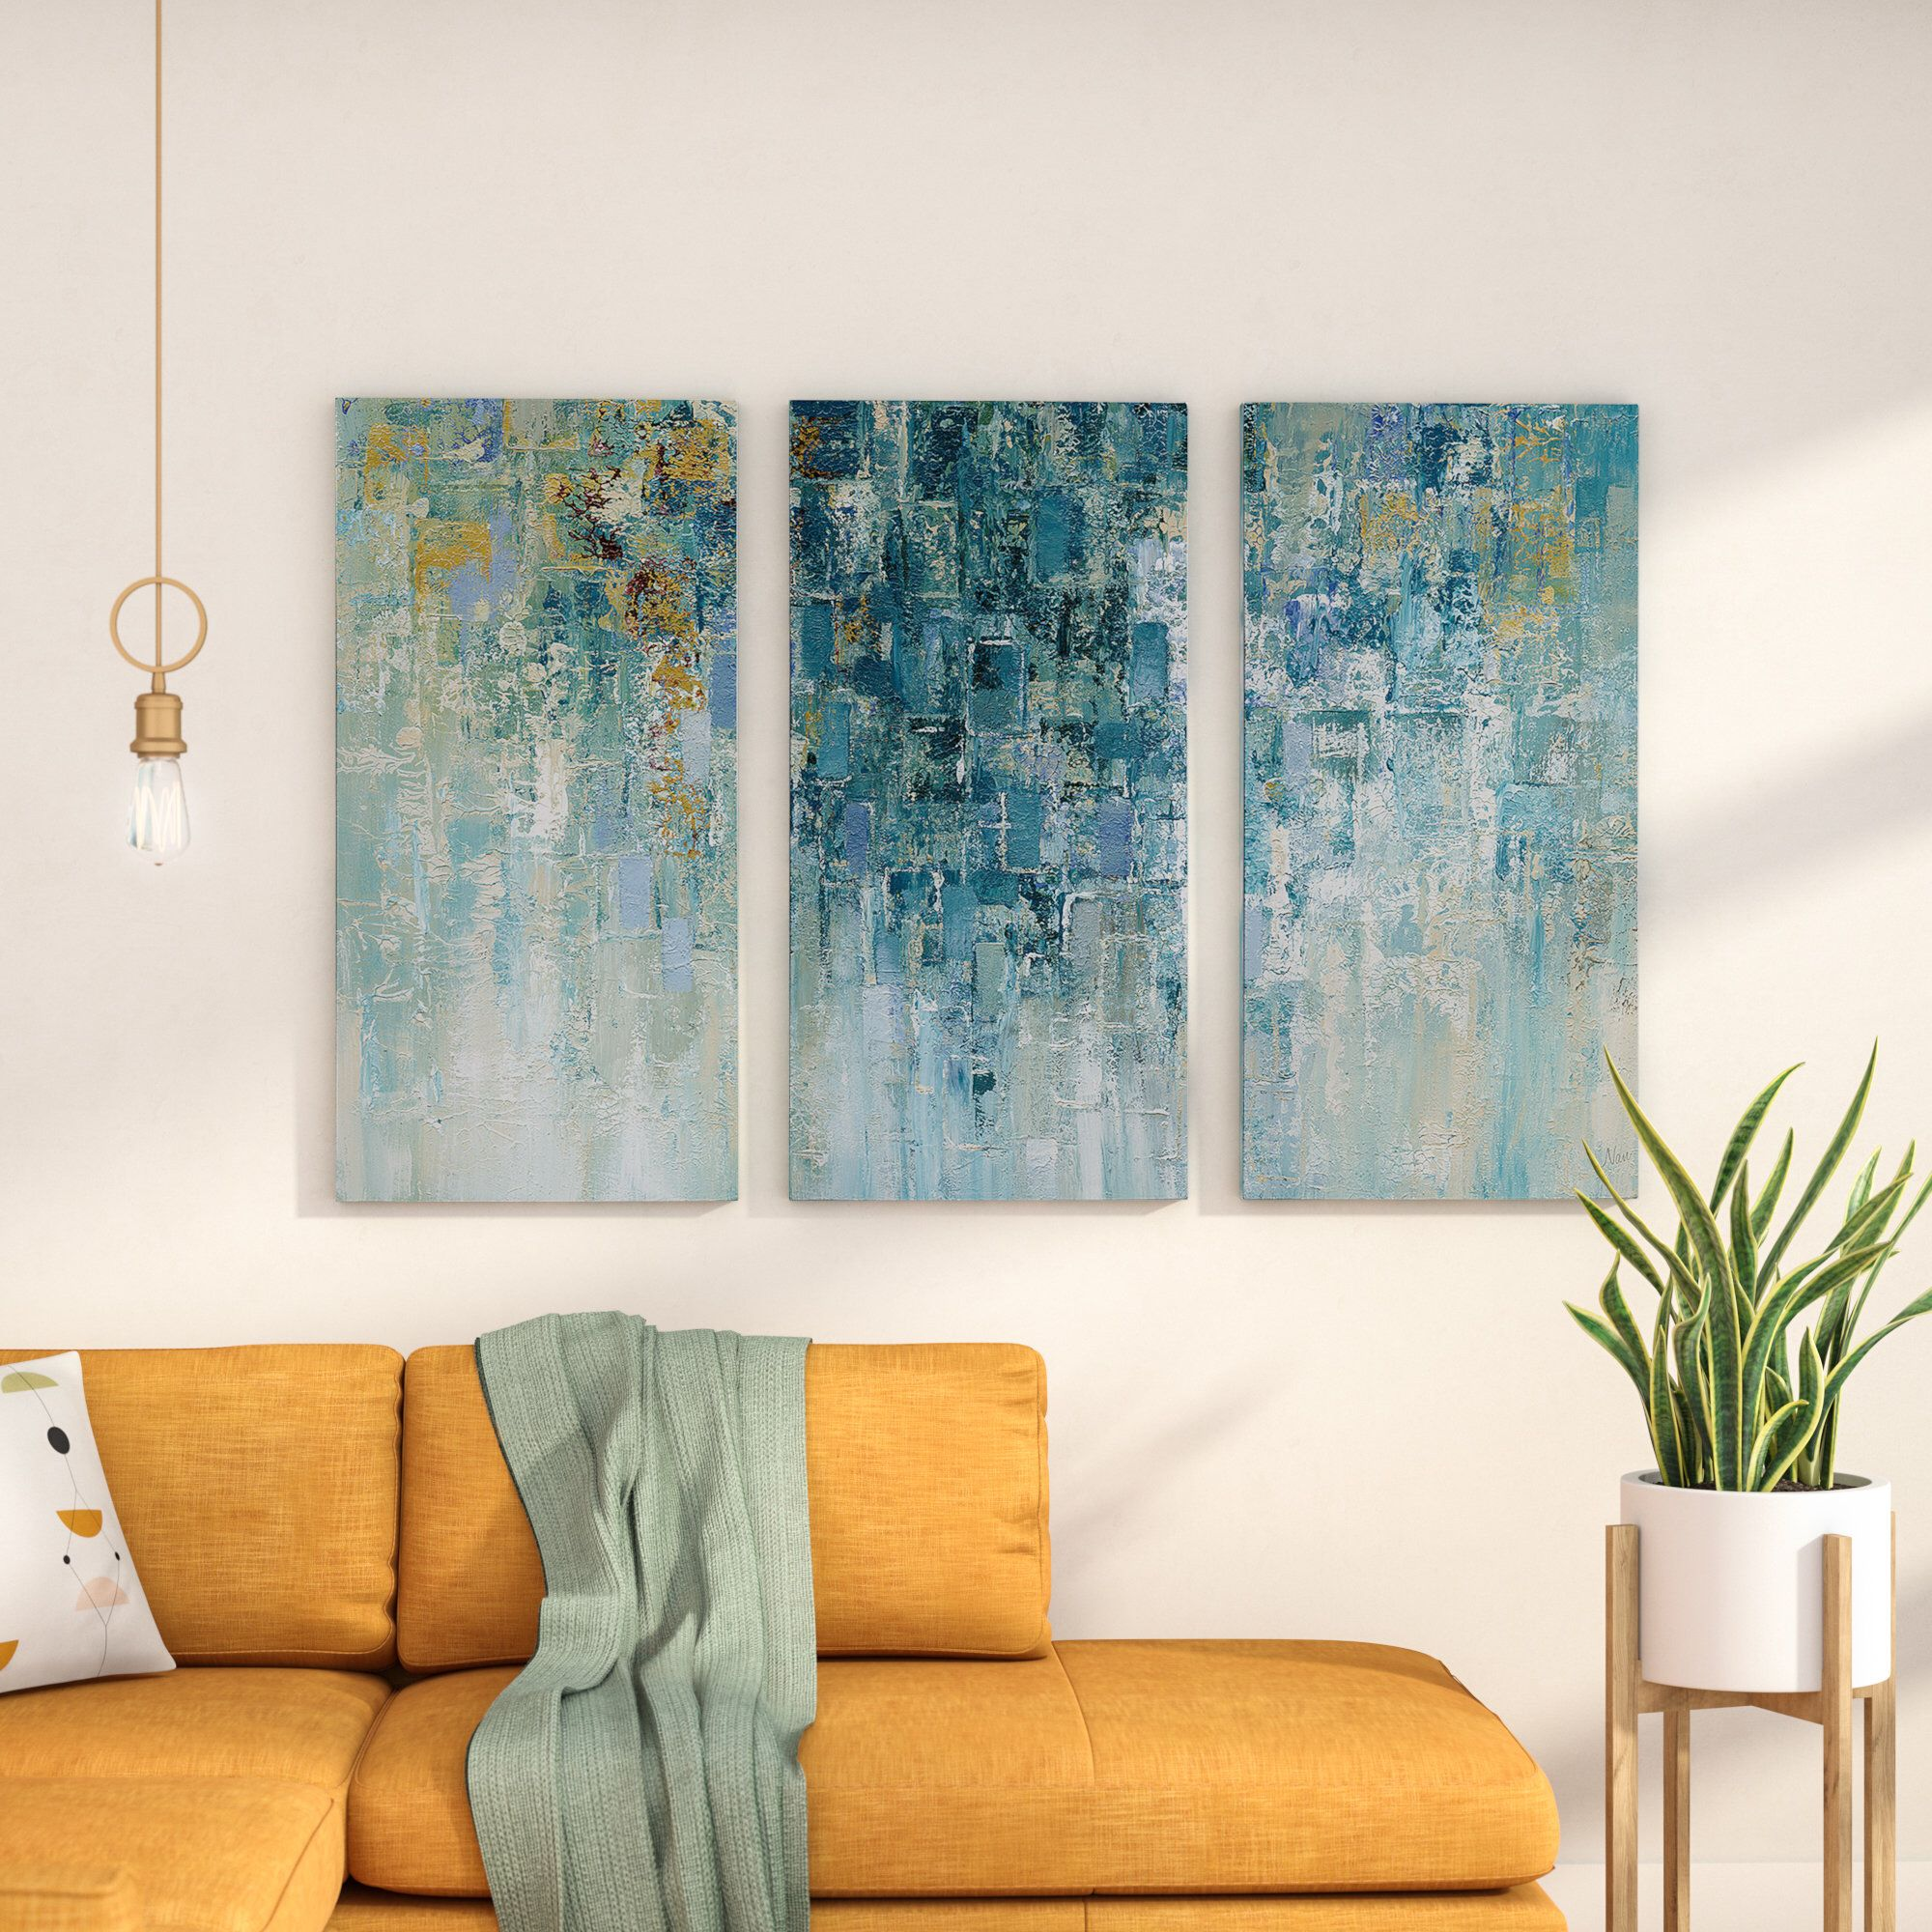 I Love The Rain 3 Piece Wrapped Canvas Multi Piece Image Print Set Oversized Canvas Art Painting Prints Canvas Painting